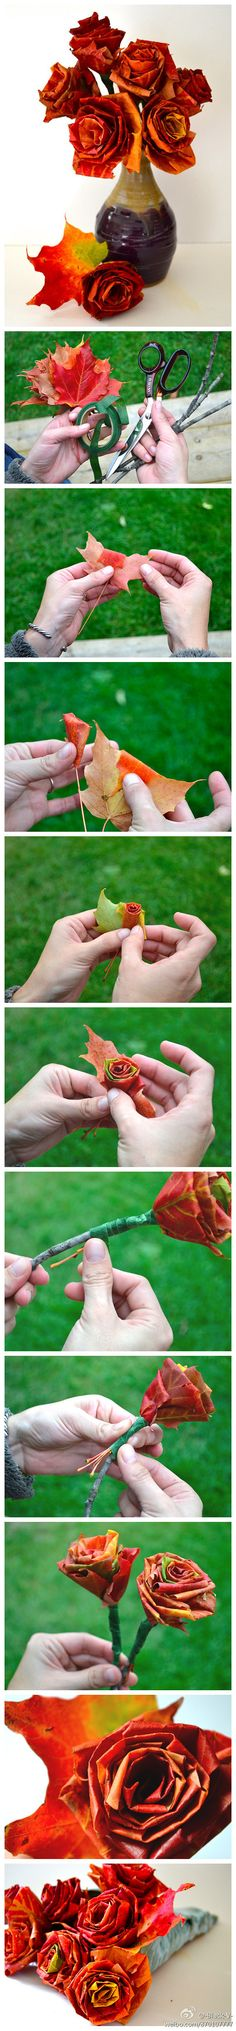 Roses made from fall leaves